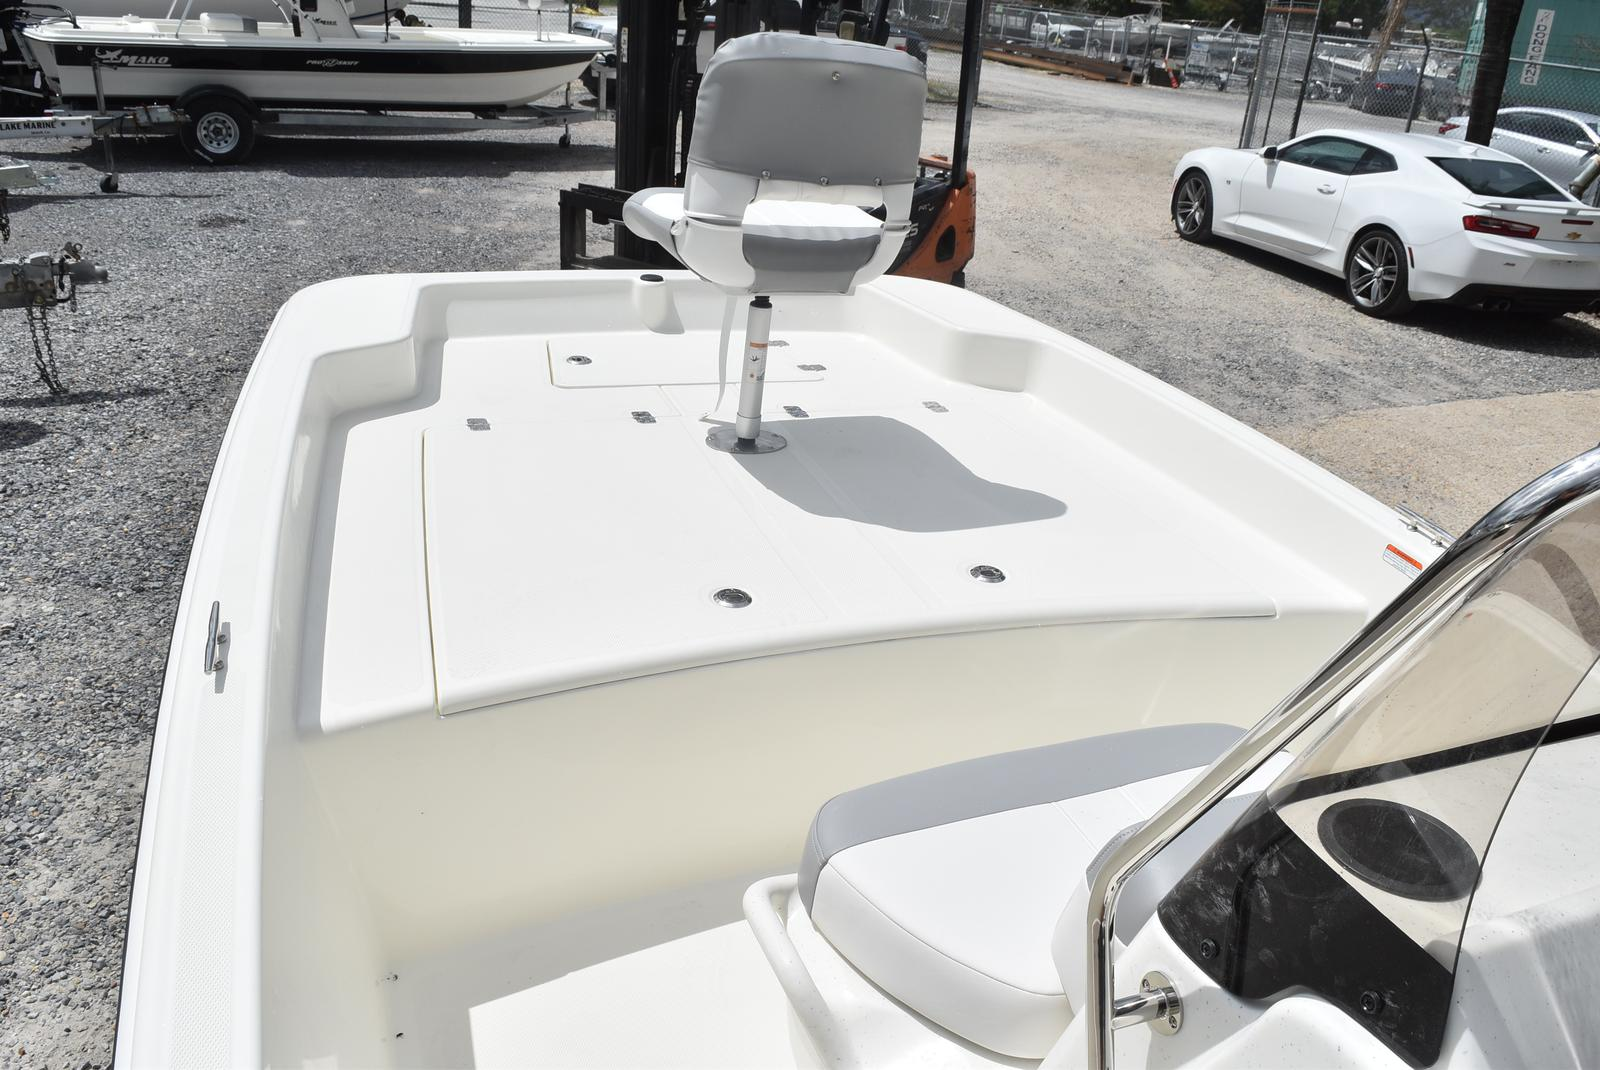 2020 Mako boat for sale, model of the boat is Pro Skiff 17, 75 ELPT & Image # 445 of 702